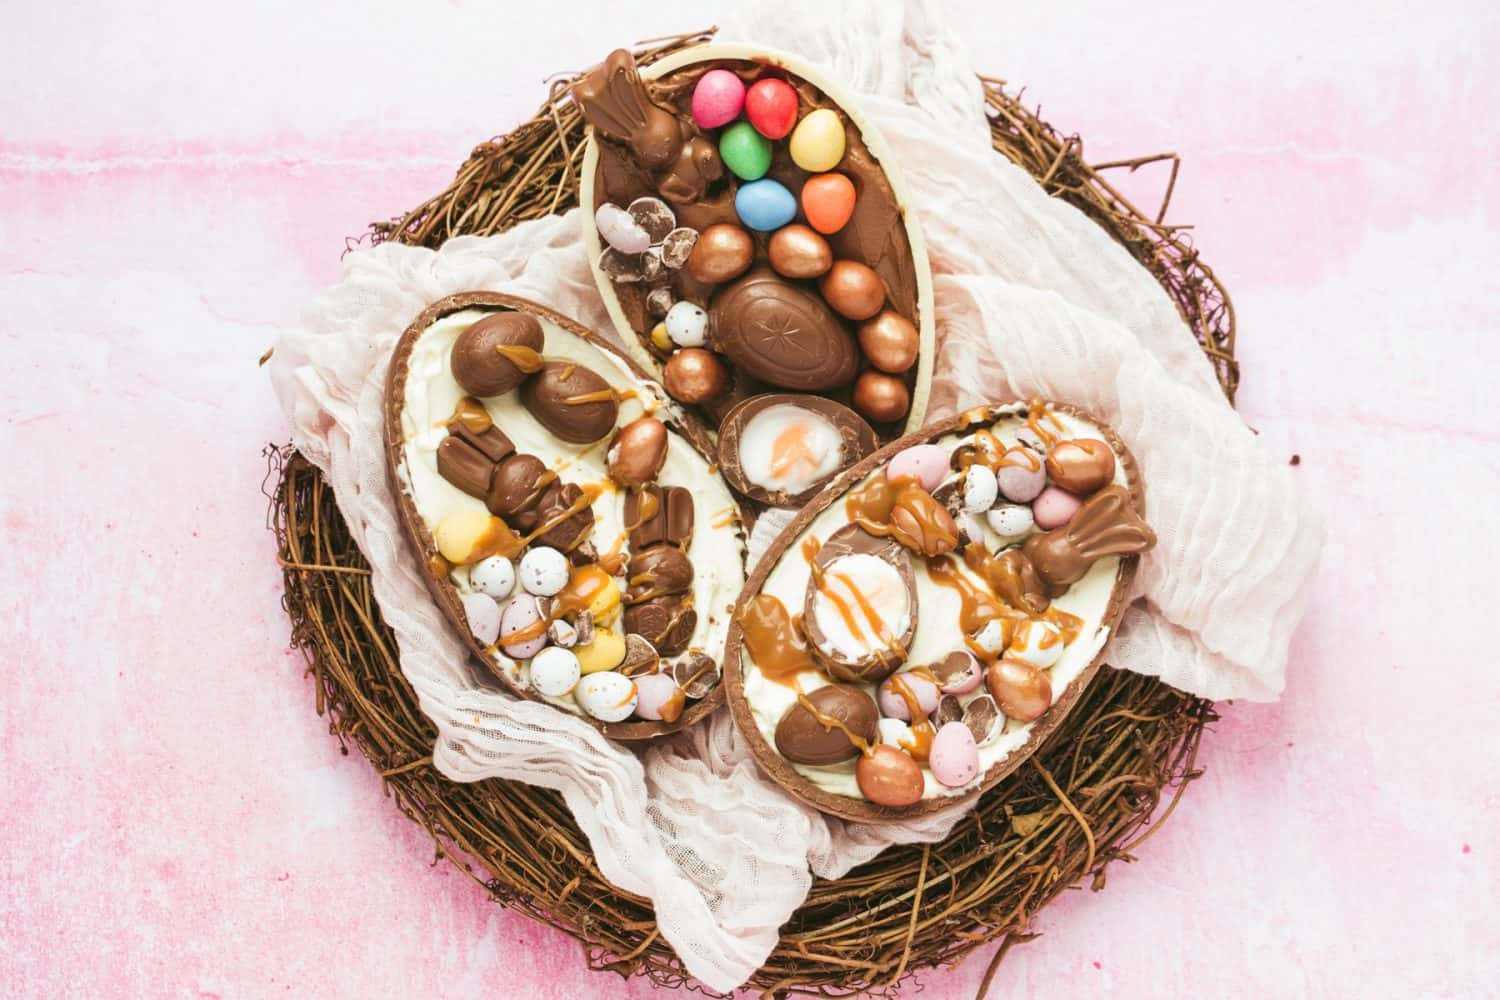 An Easter nest with 3 halves of chocolate Easter eggs on top filled with dessert and creme eggs.